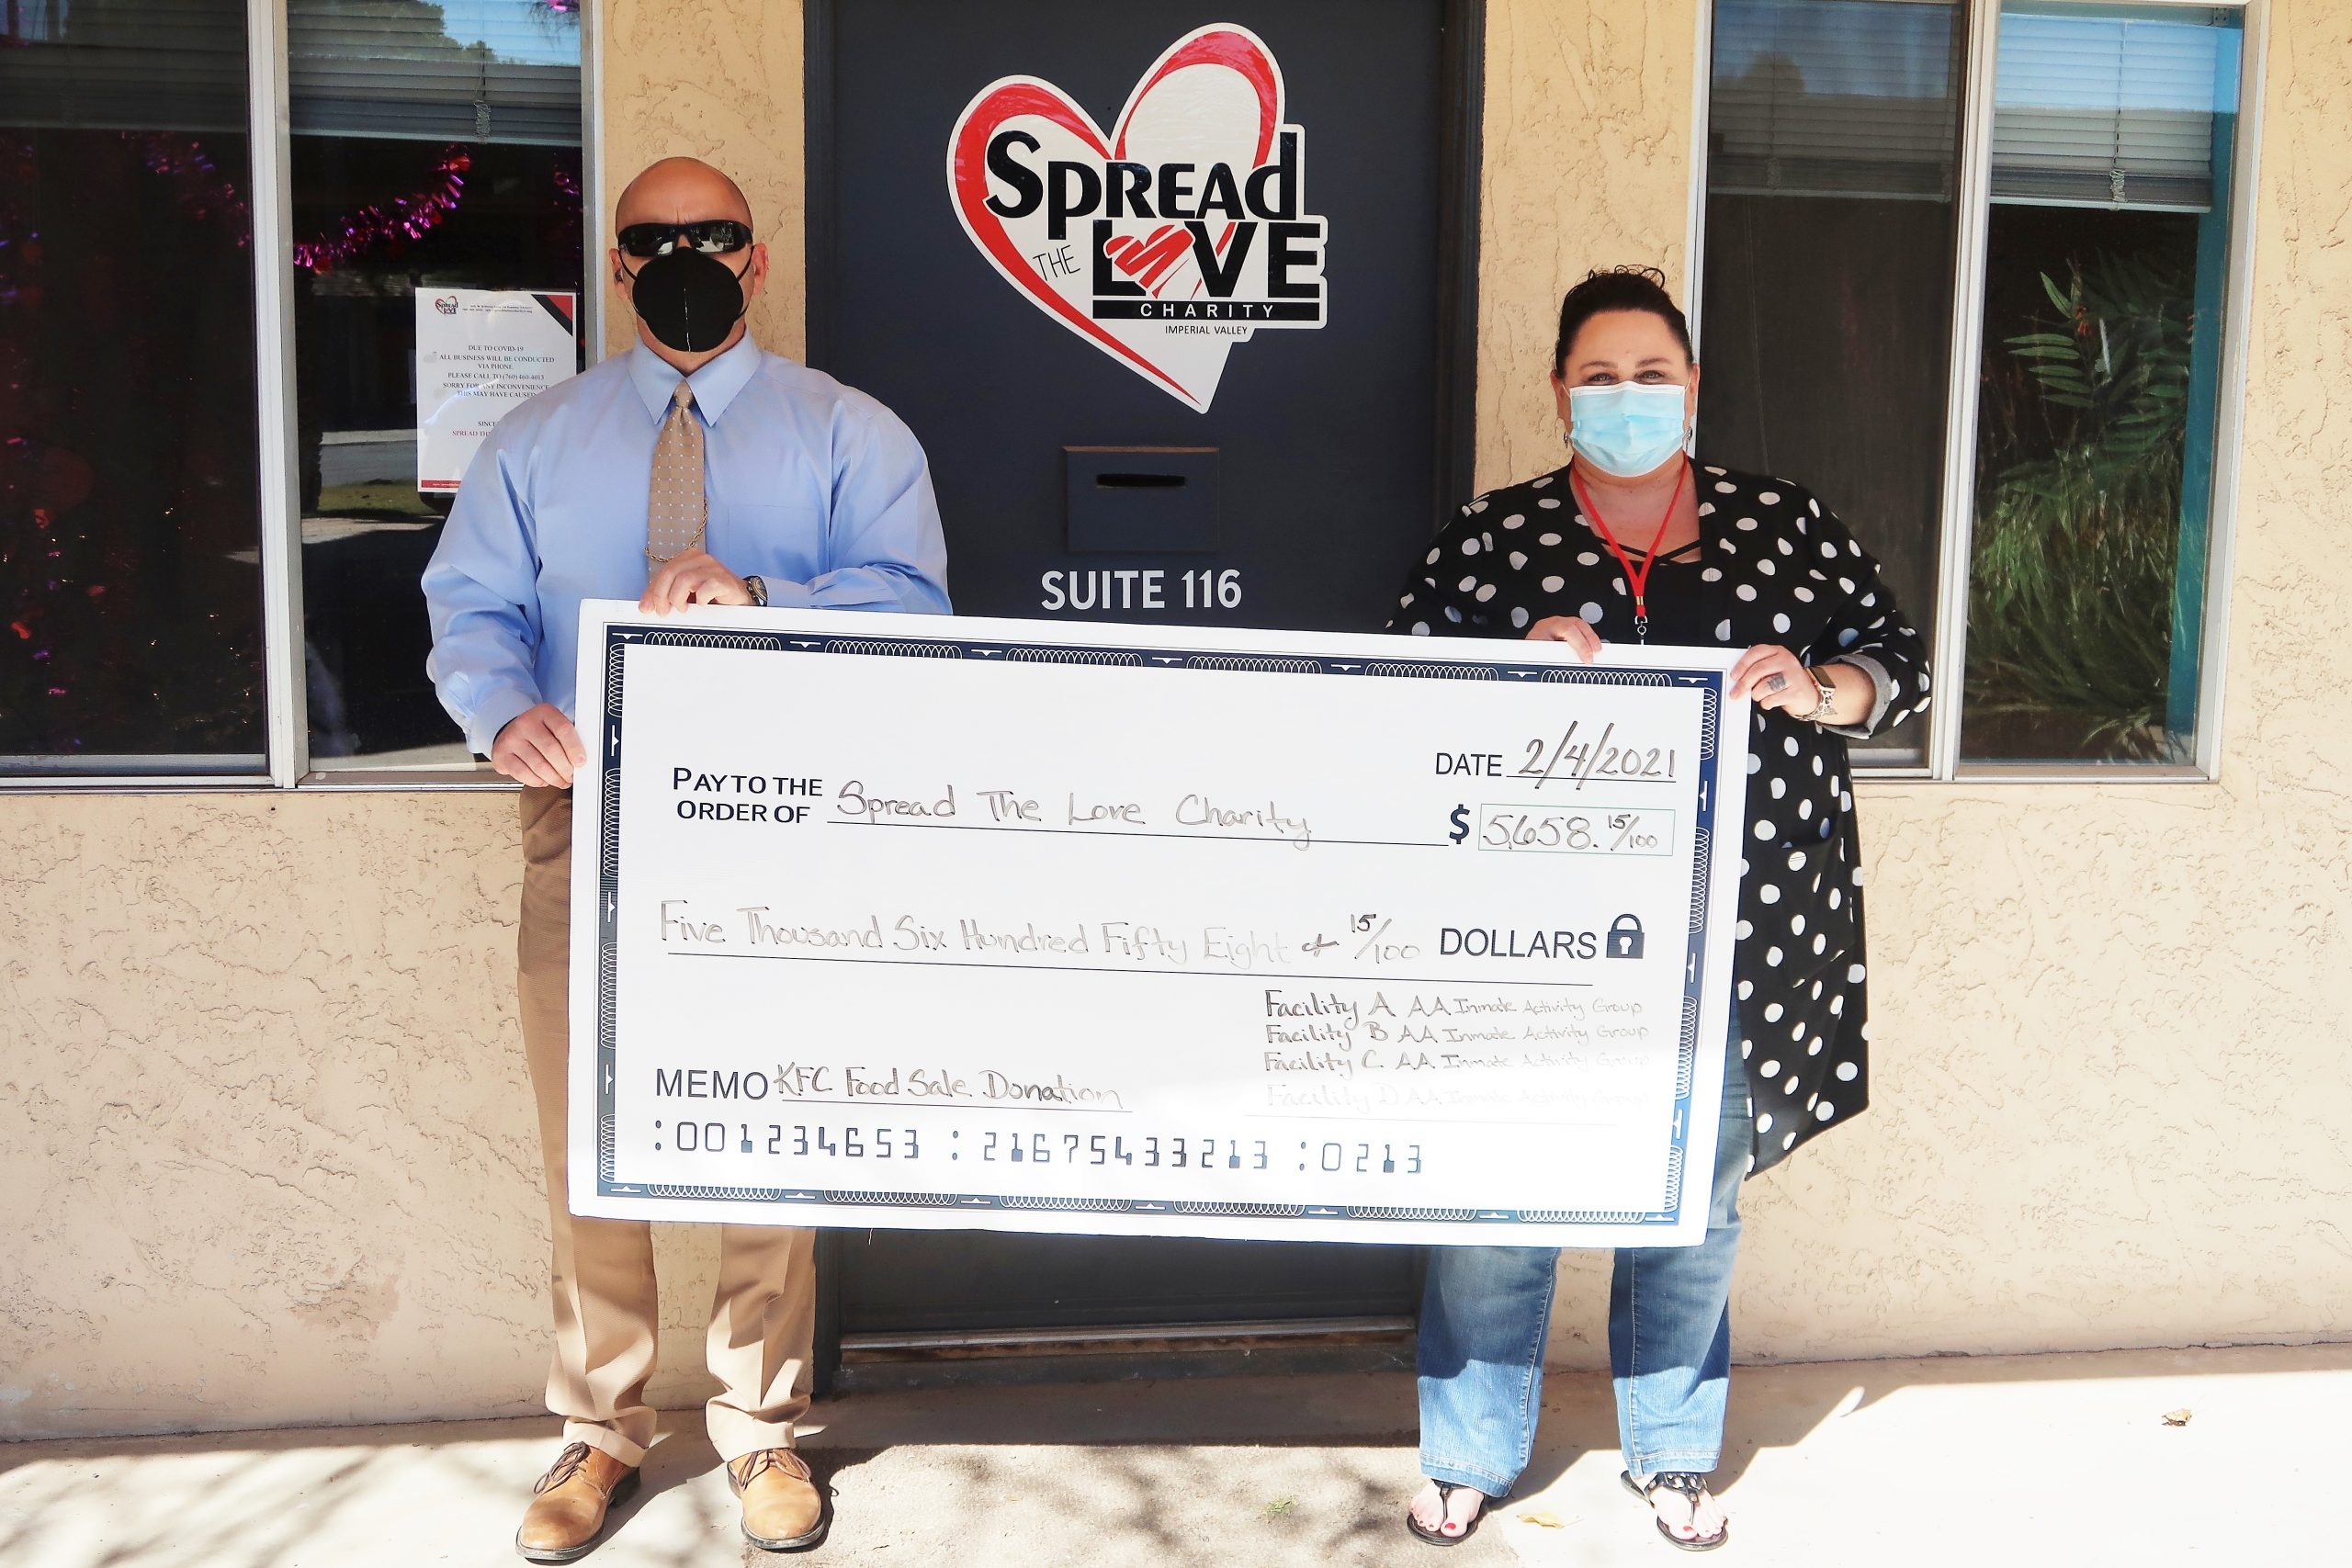 A check for Spread the Love Charity.